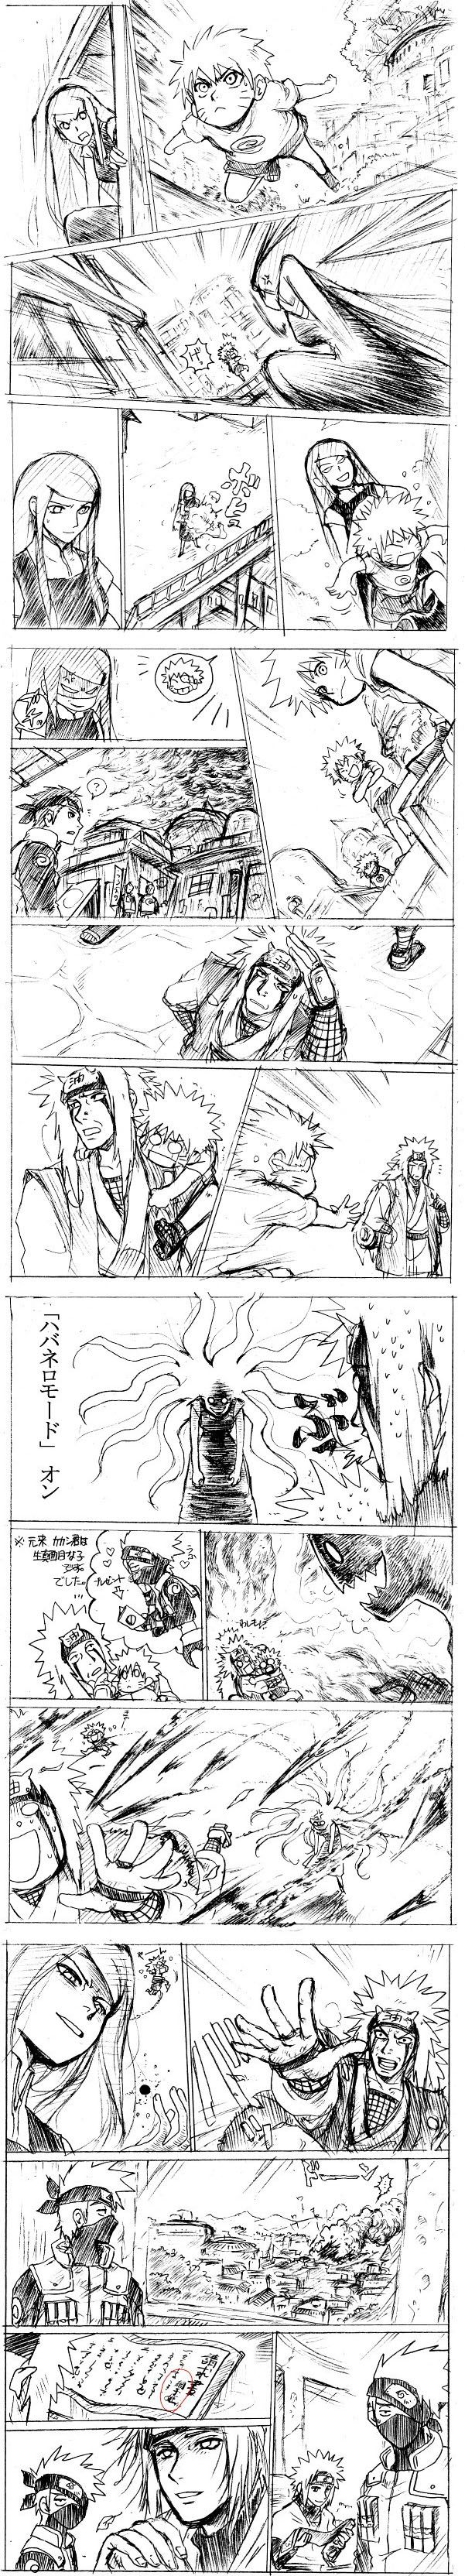 Naruto, no idea what it says but it's cute! Man I wish I knew what it meant...